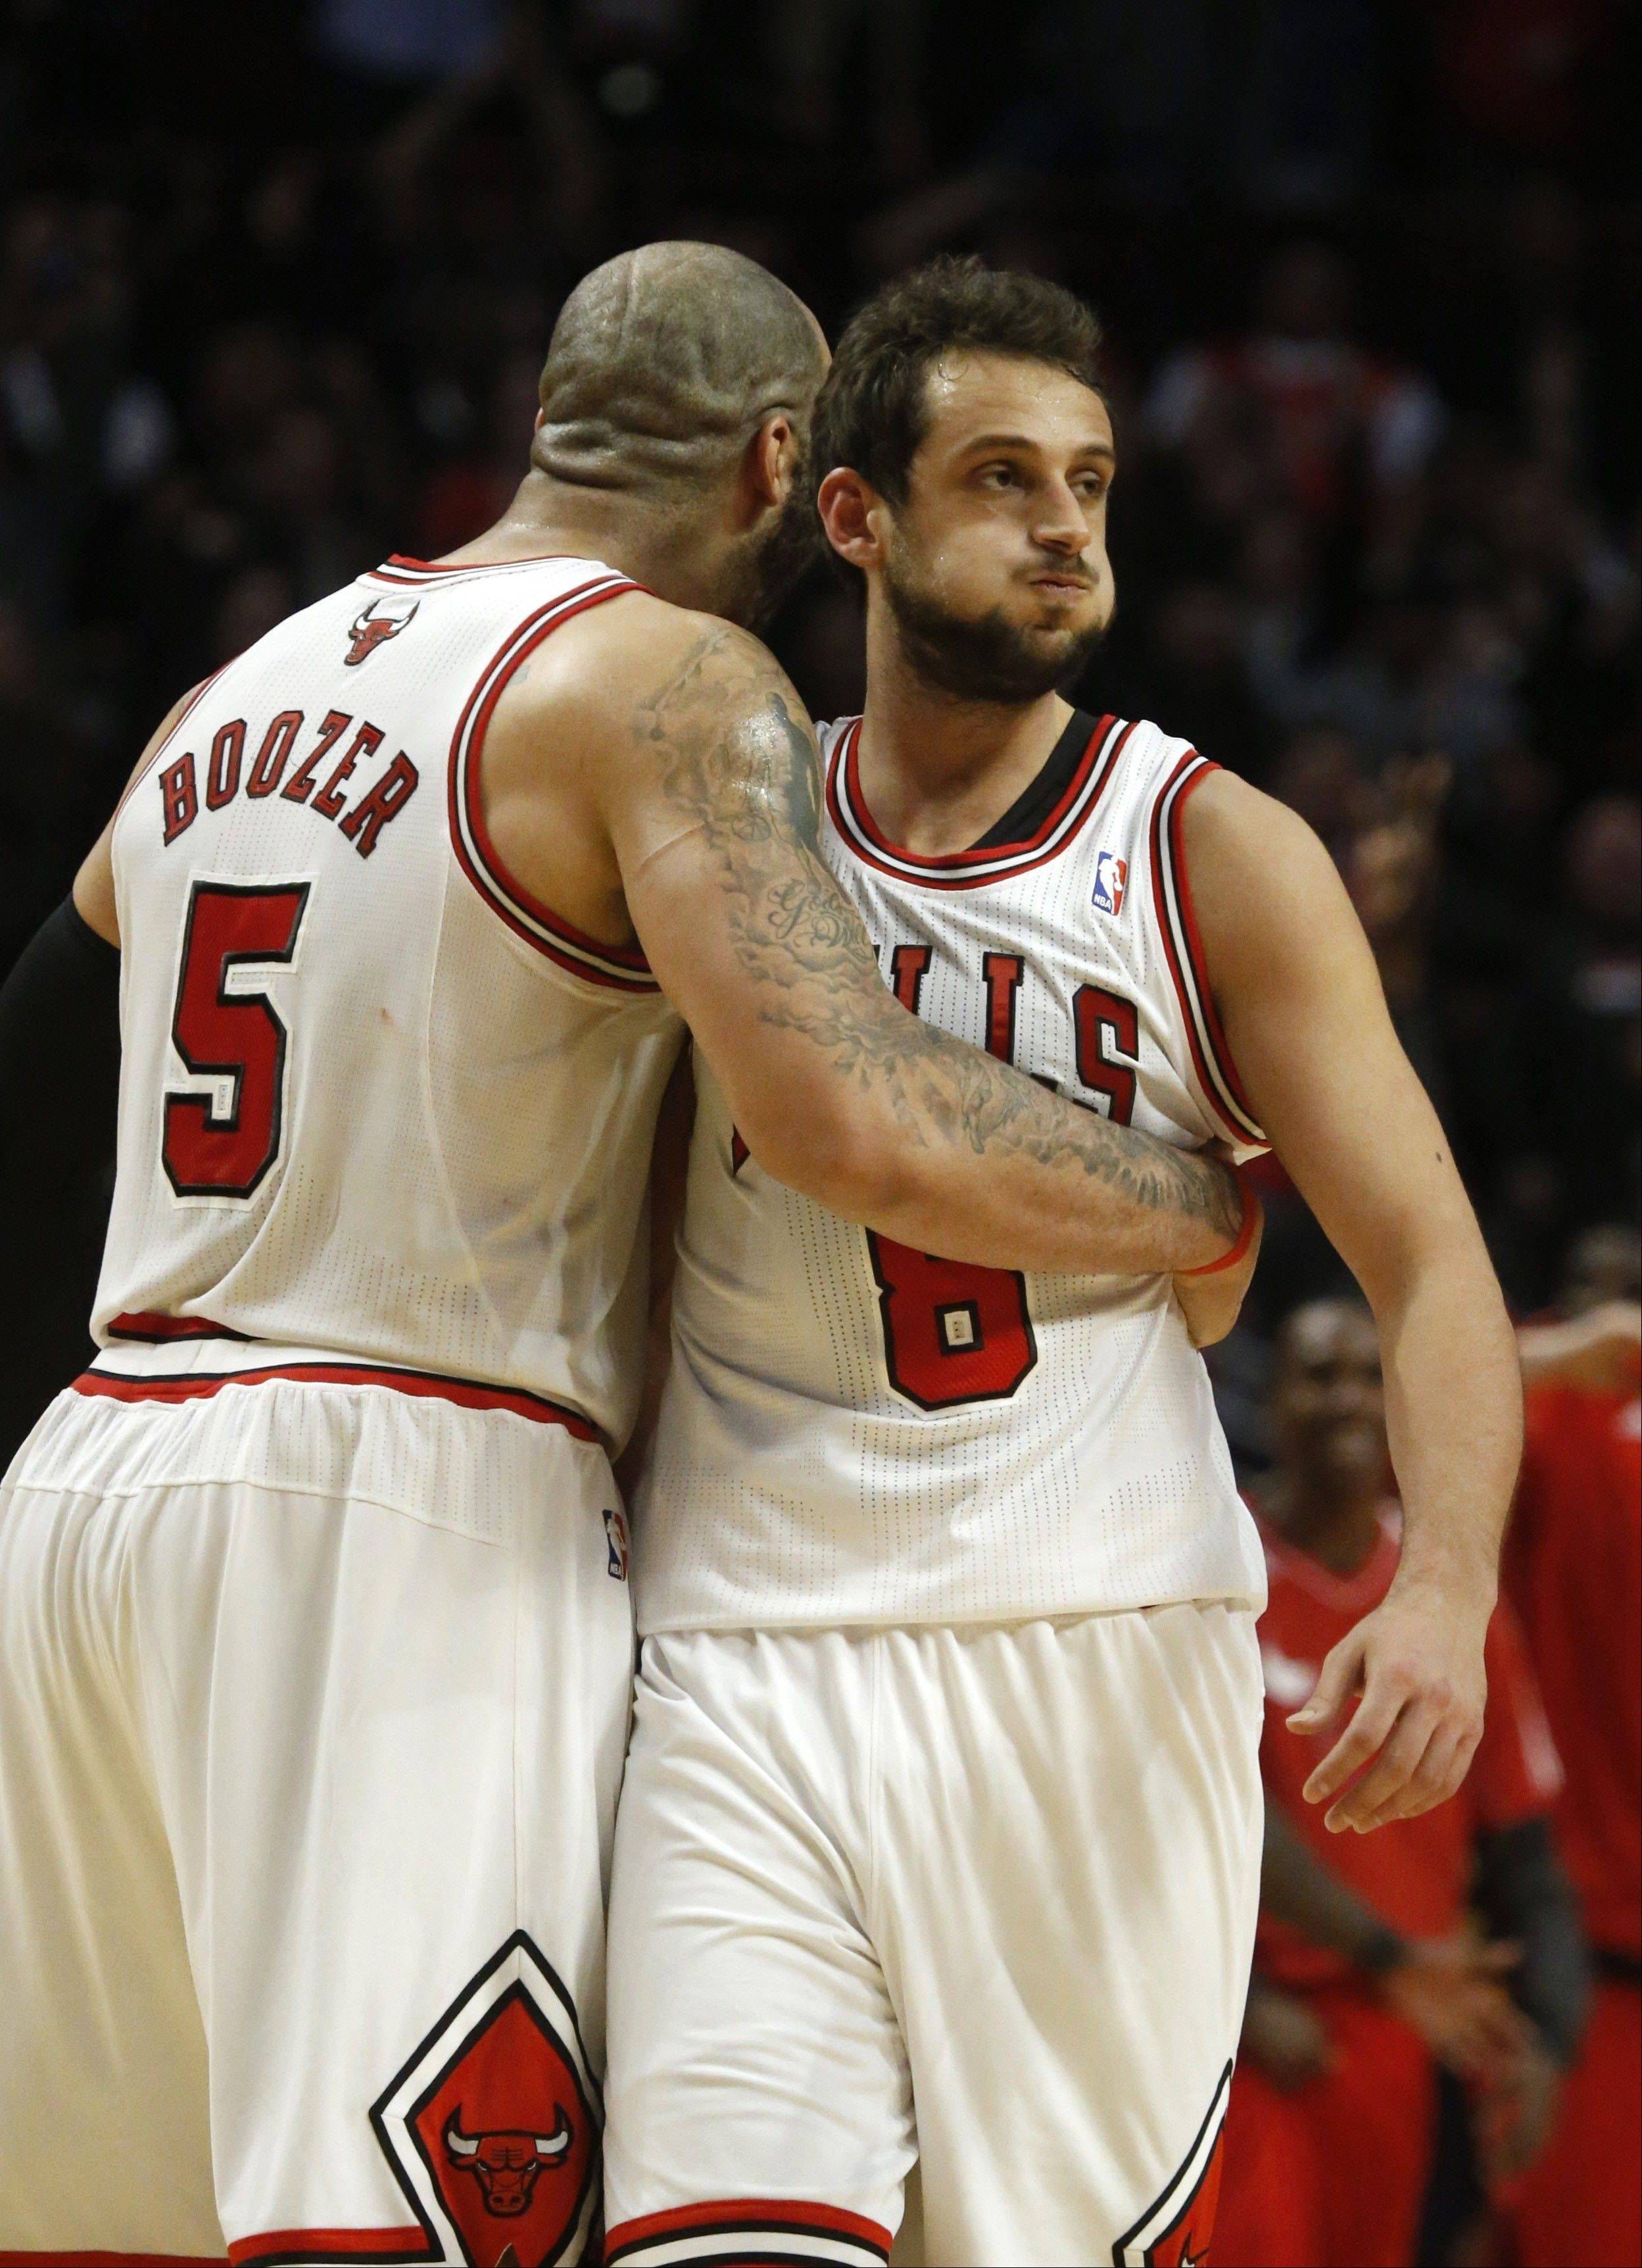 Carlos Boozer hugs teammate Marco Belinelli after Belinelli's 3-point basket gave the Bulls the lead and an 89-88 win over Utah on Friday at the United Center. Boozer and Belinelli led the Bulls with 22 points each.